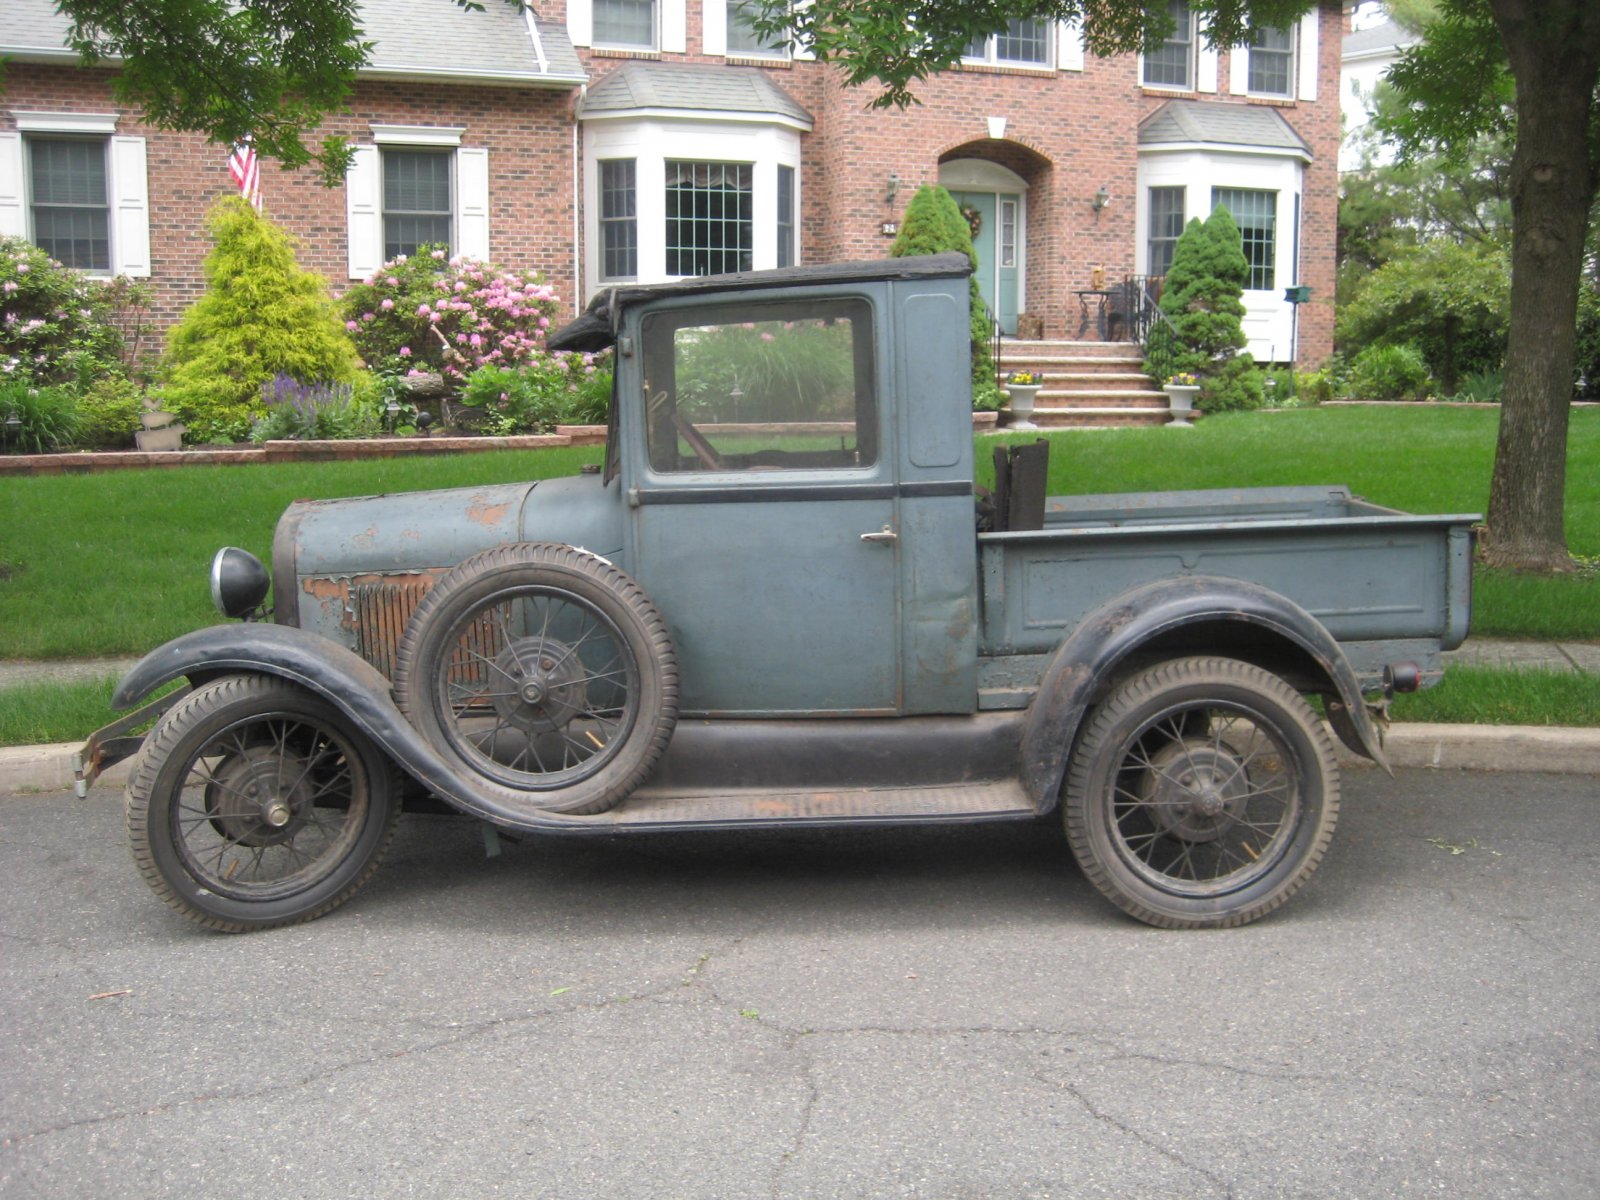 for sale new price original 1928 ford pickup the h a m b. Black Bedroom Furniture Sets. Home Design Ideas